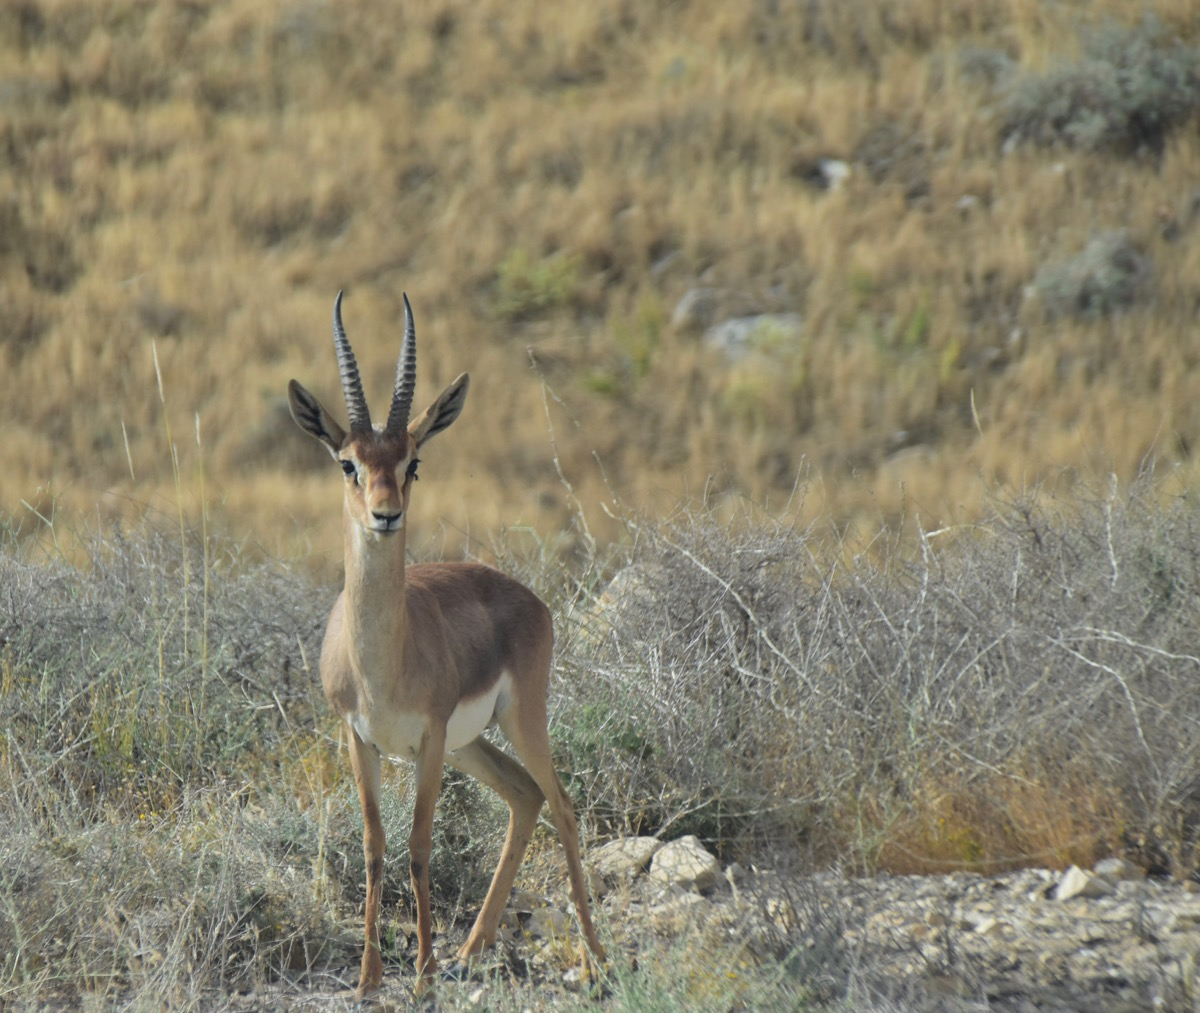 Gazelle in Wadi Qelt